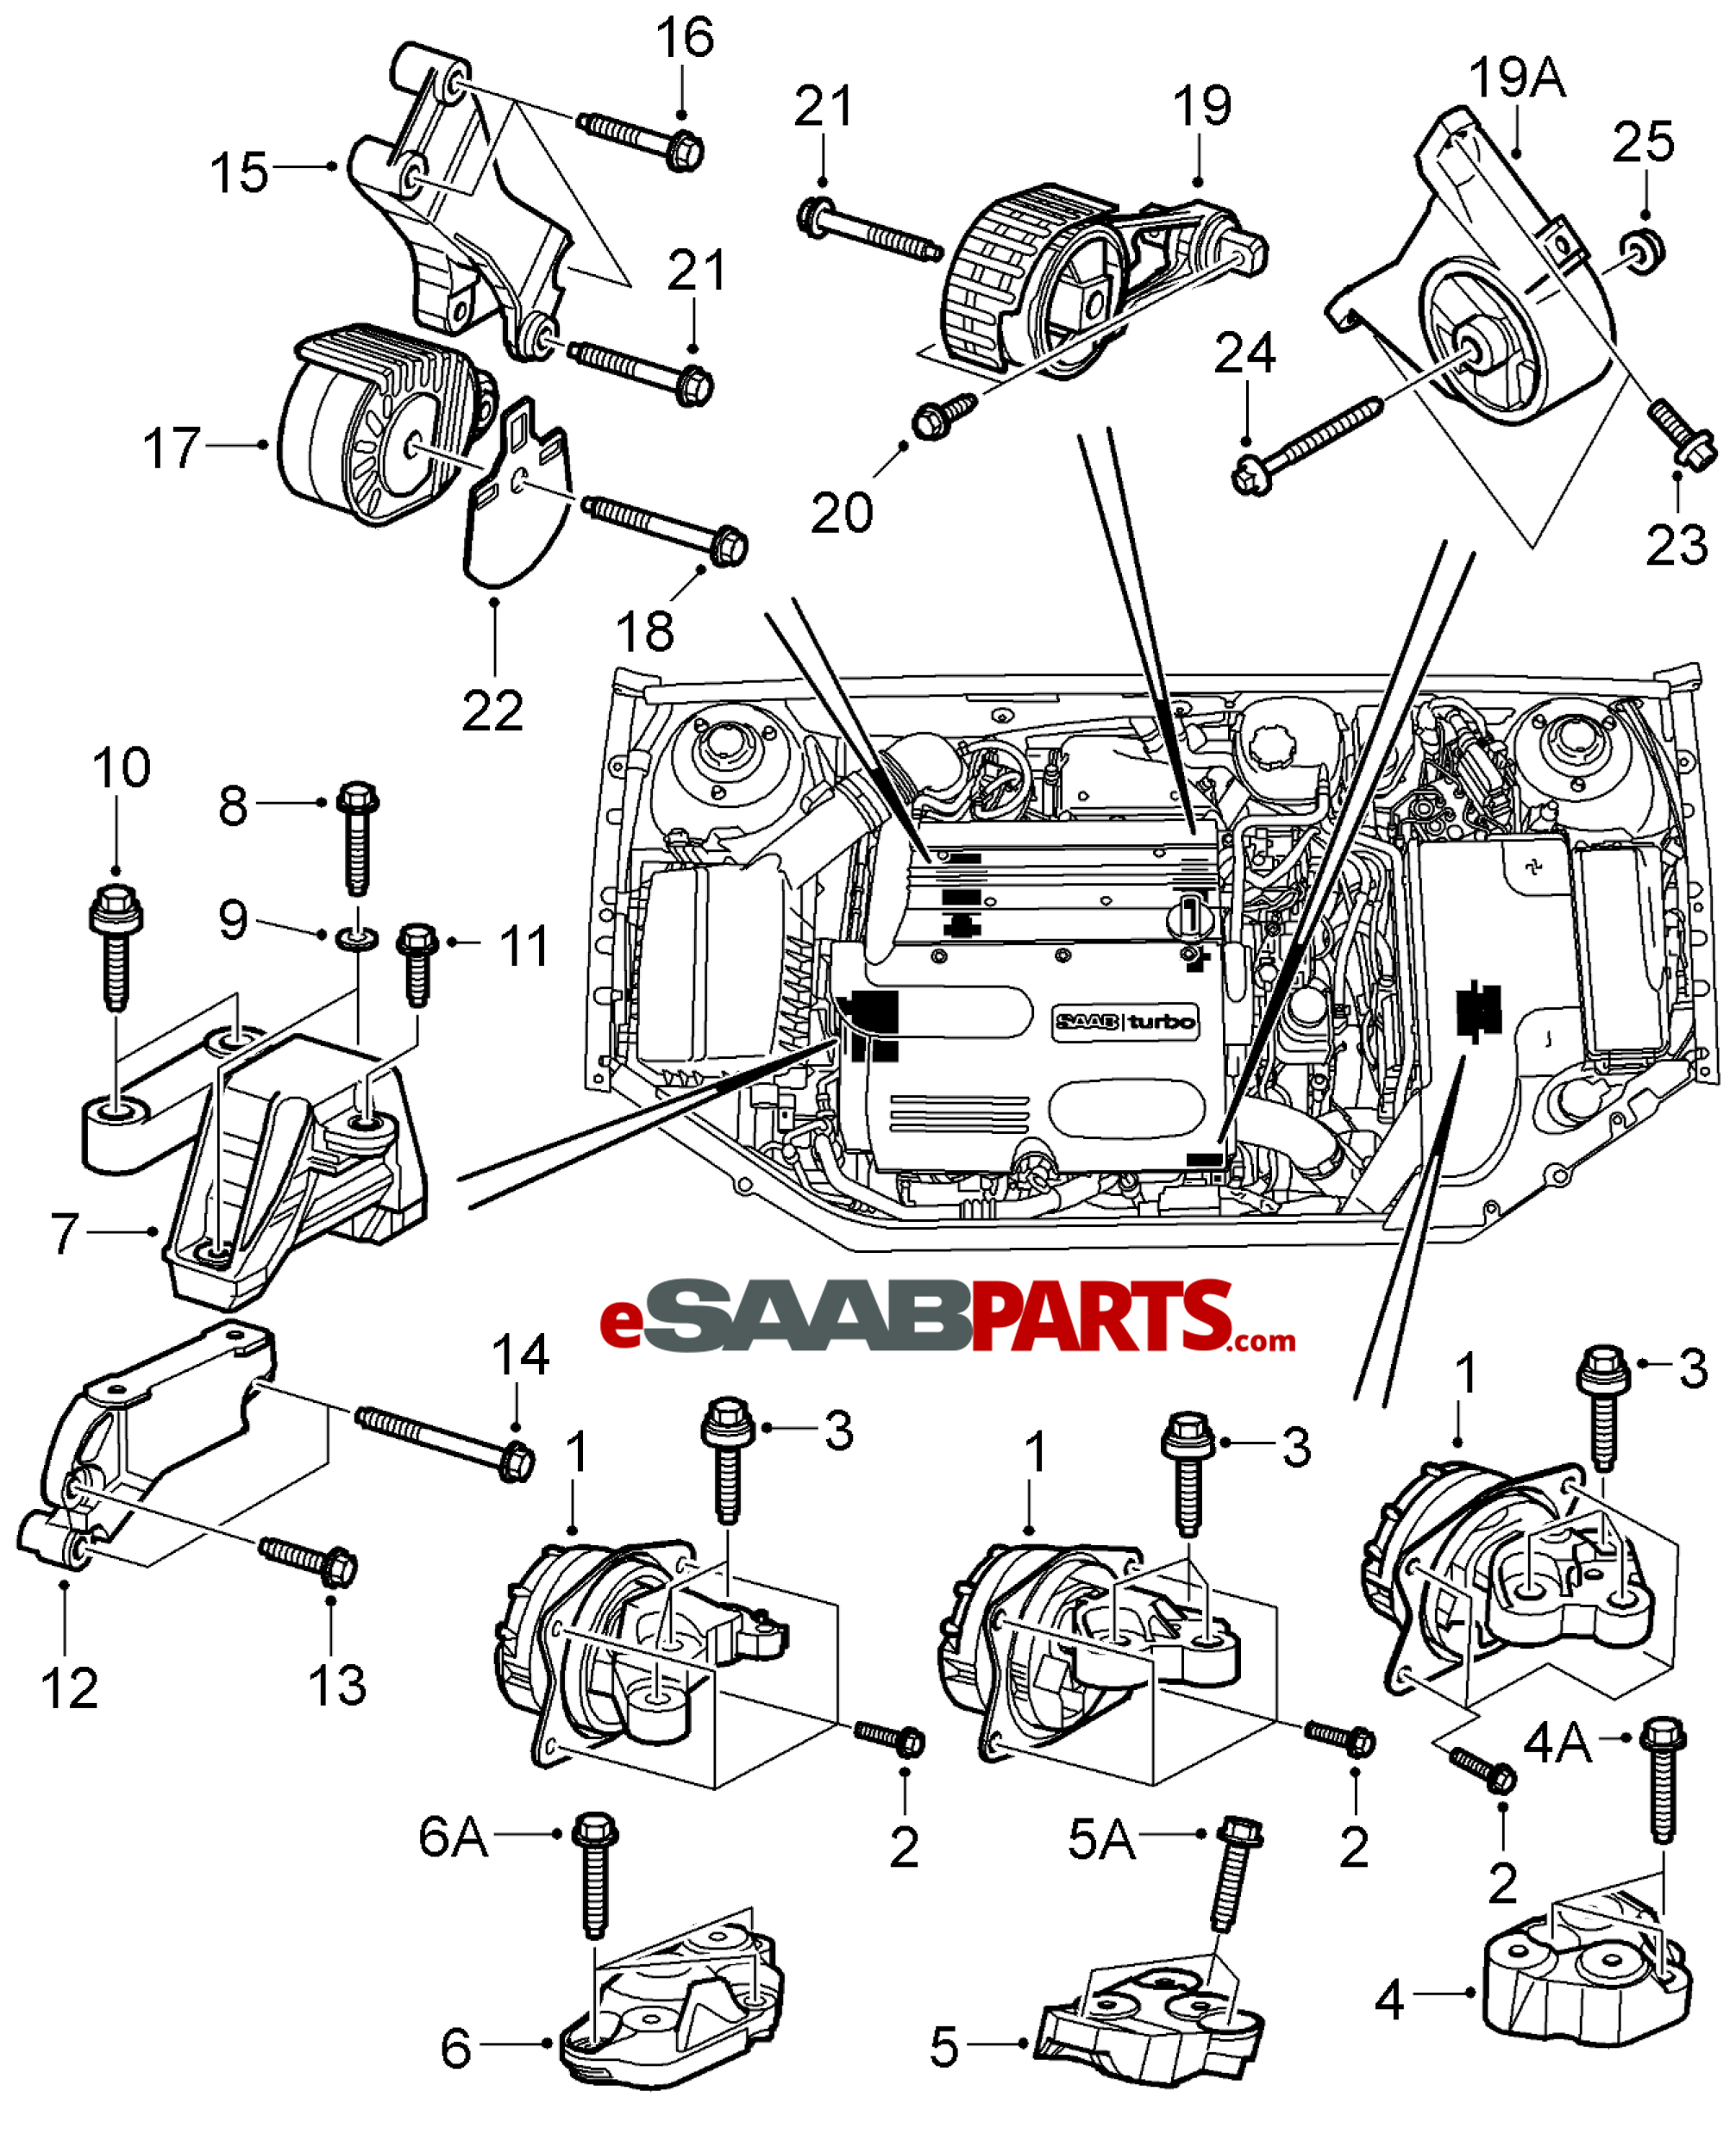 esaabparts com saab 9 3 9440 u003e engine parts u003e engine mounts rh esaabparts com 2000 saab 9 3 engine diagram 2006 saab 9-3 engine diagram